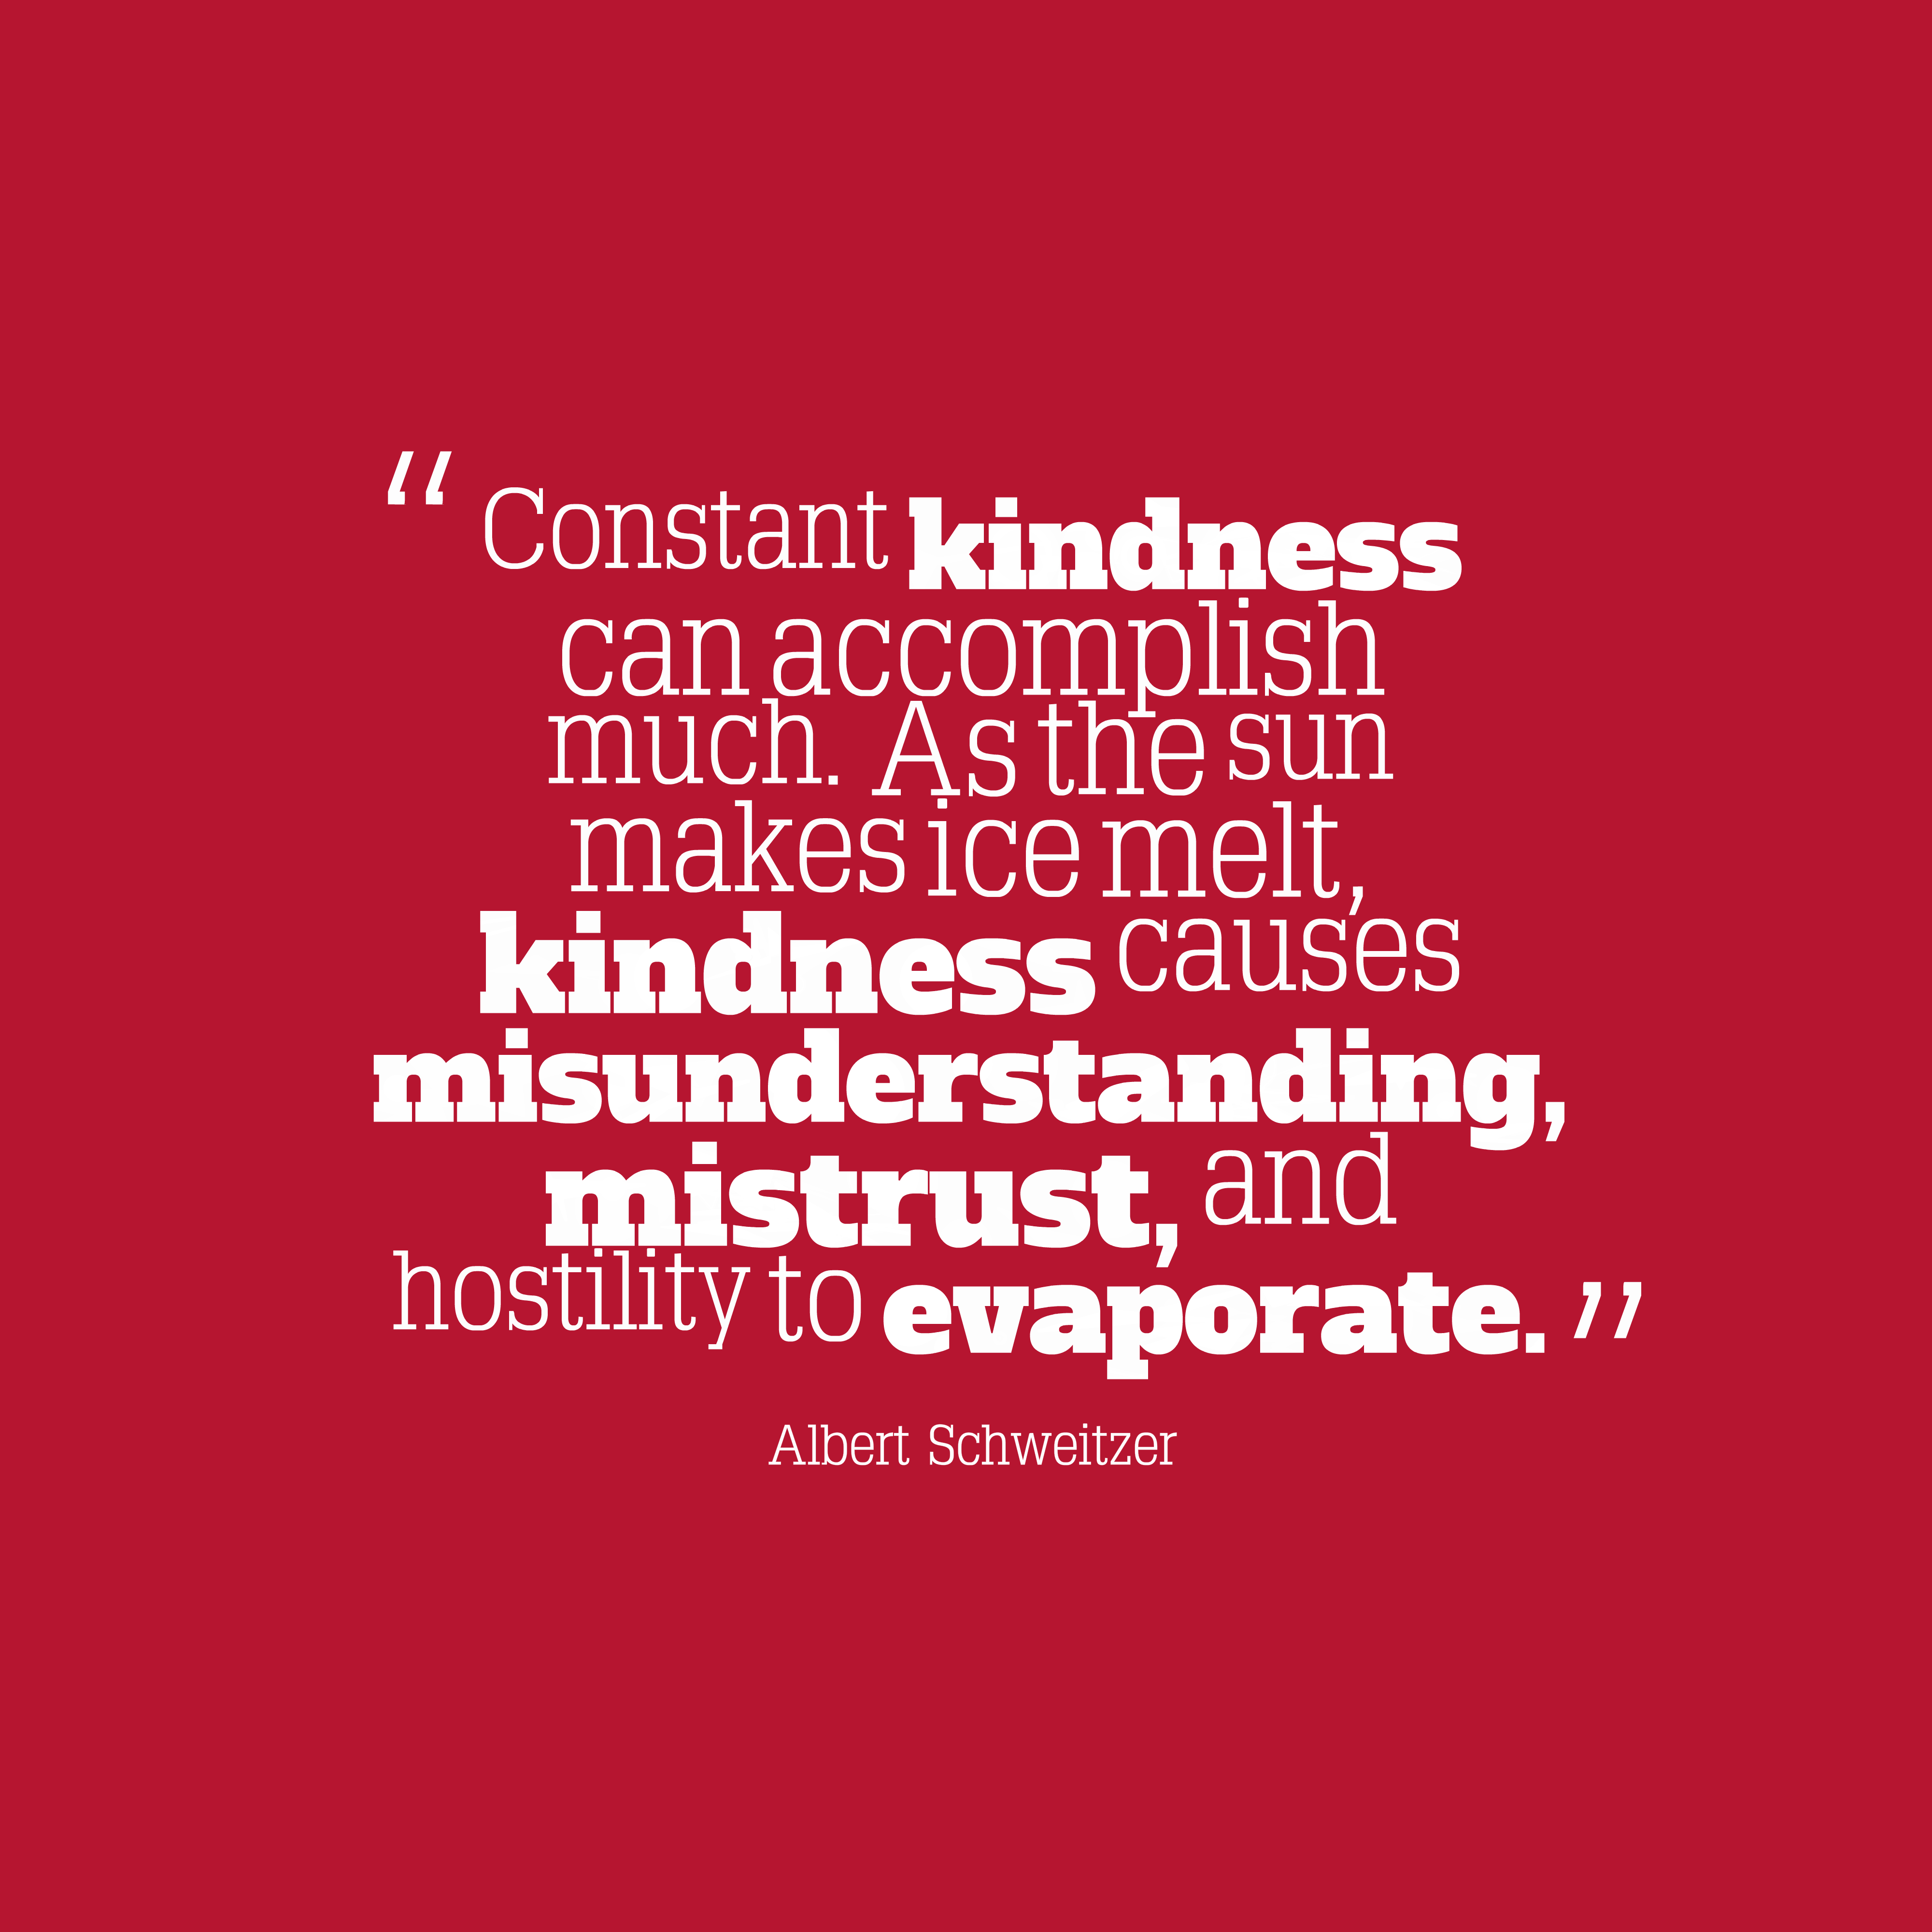 Commodity Quotes 43 Best Kindness Quotes Images